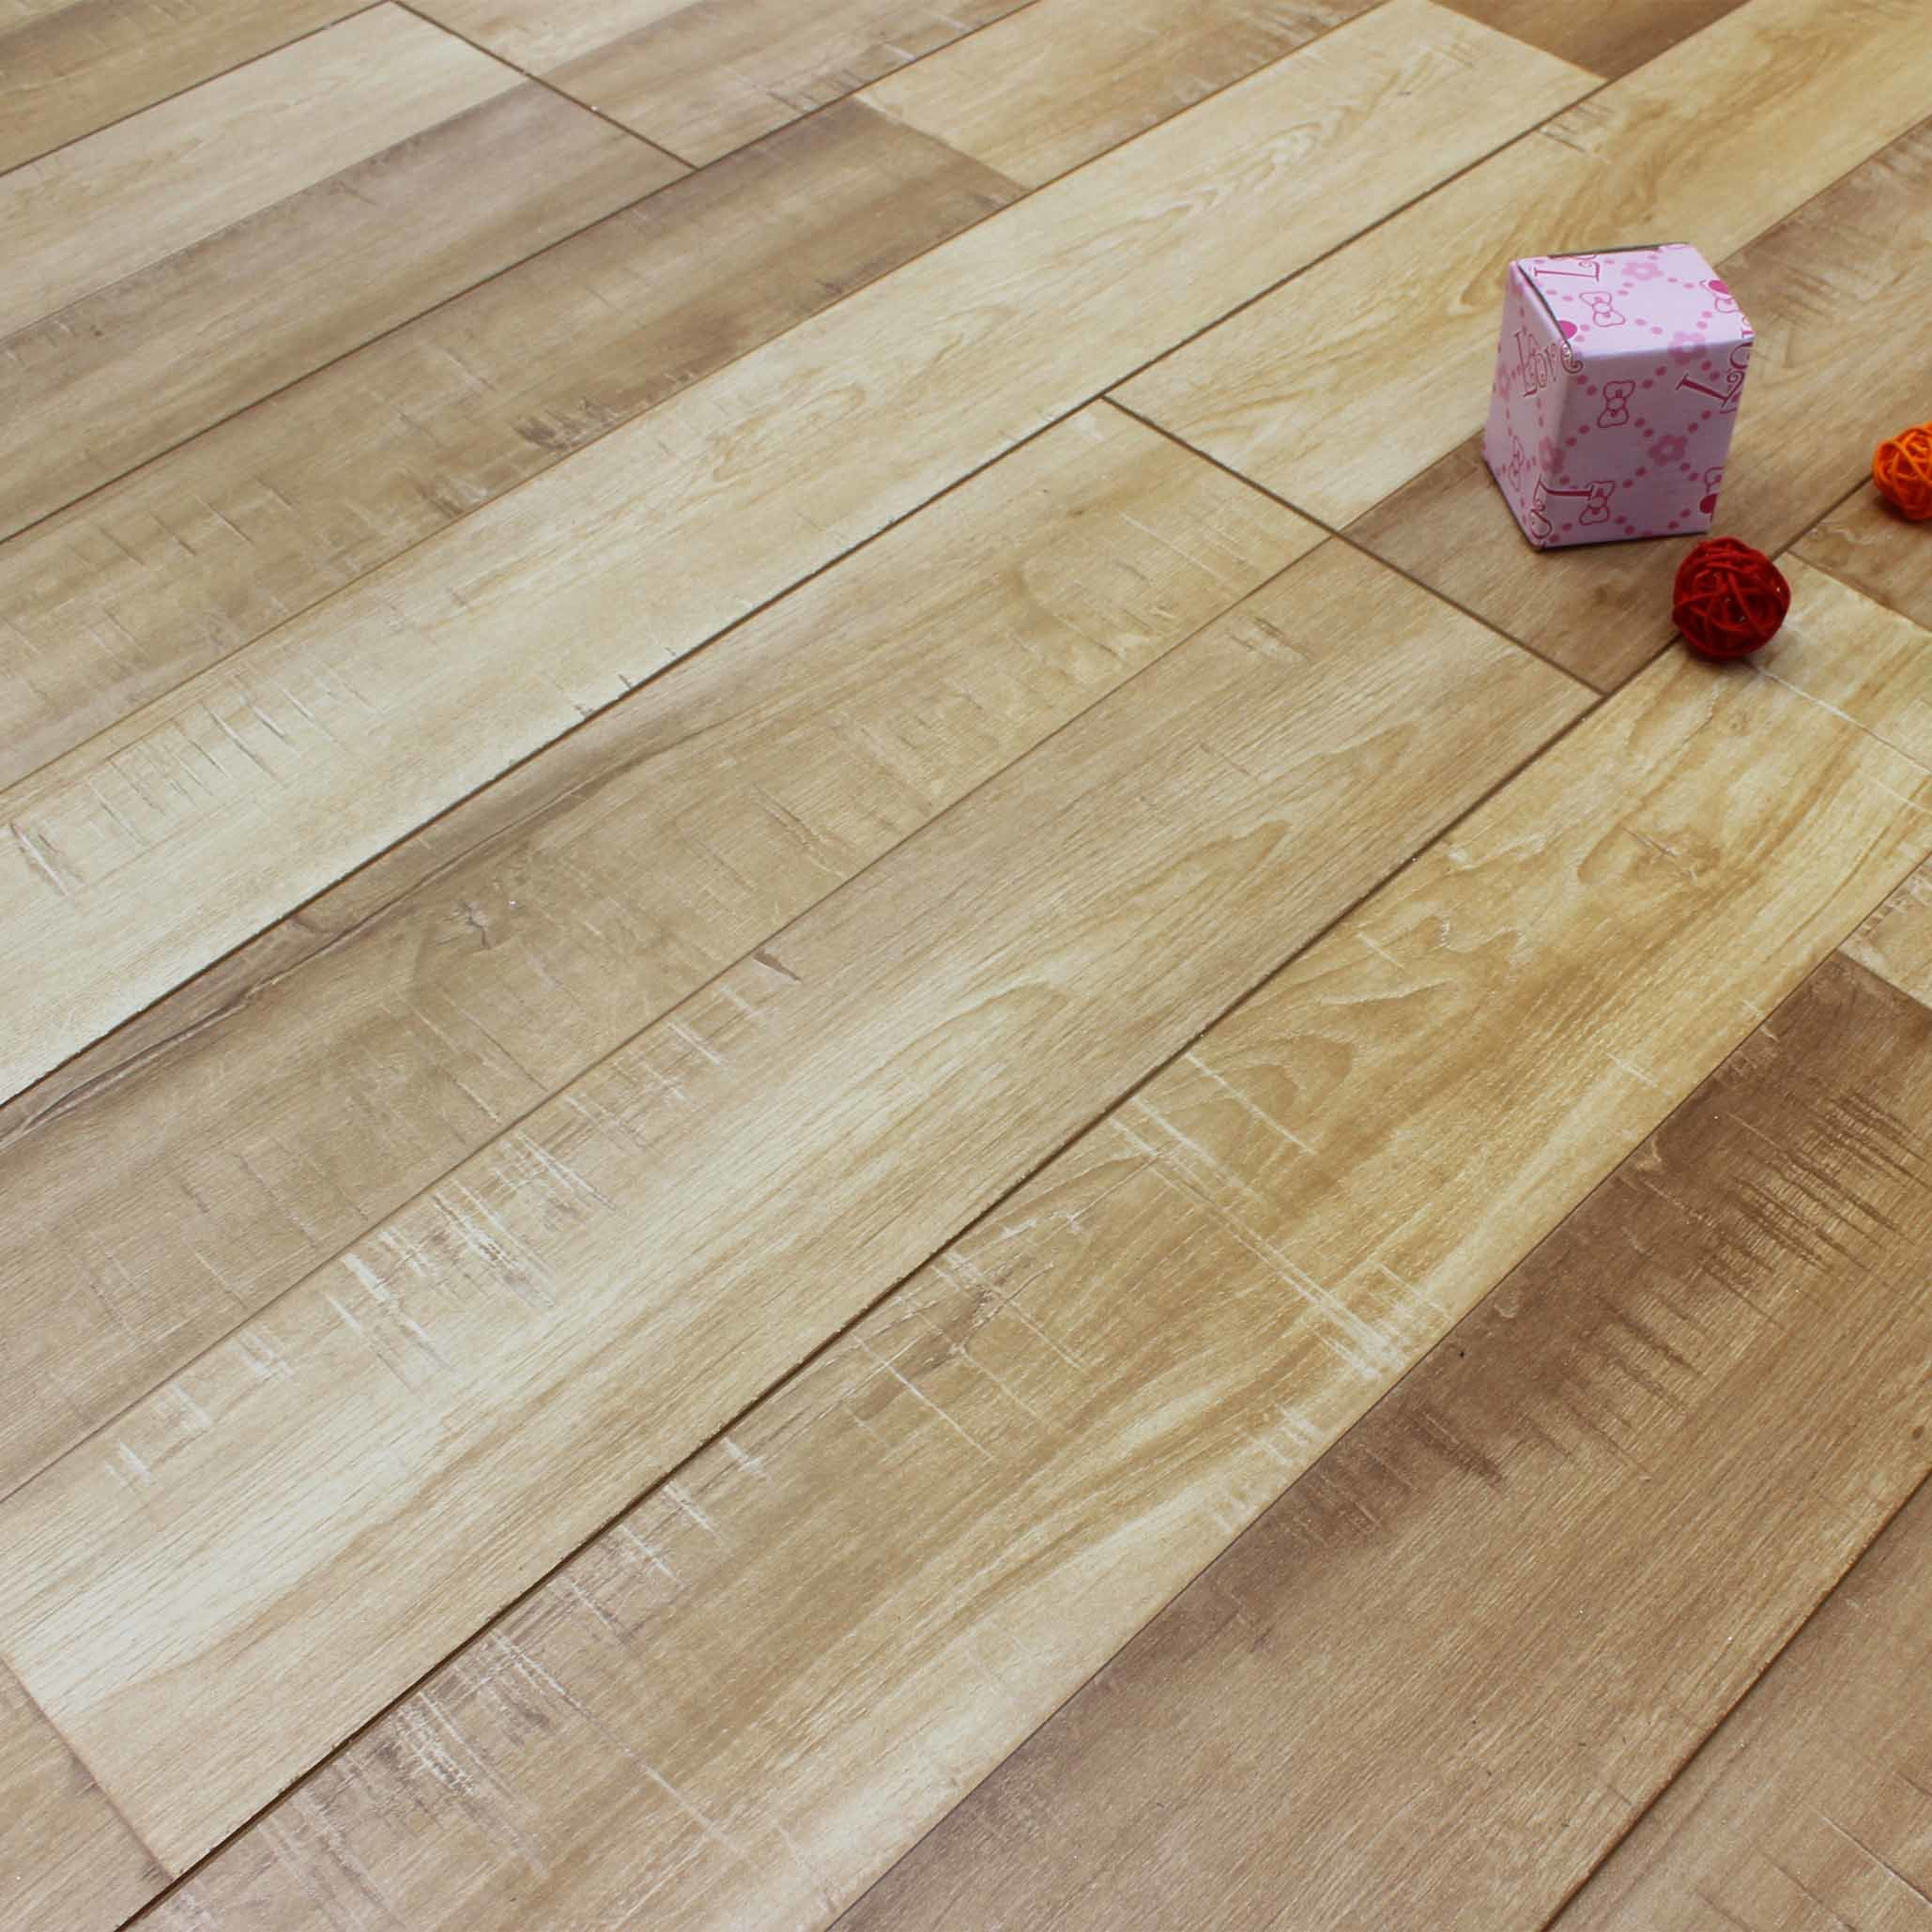 8 3mm 12 Hdf Parquet Flooring Wooden Laminate